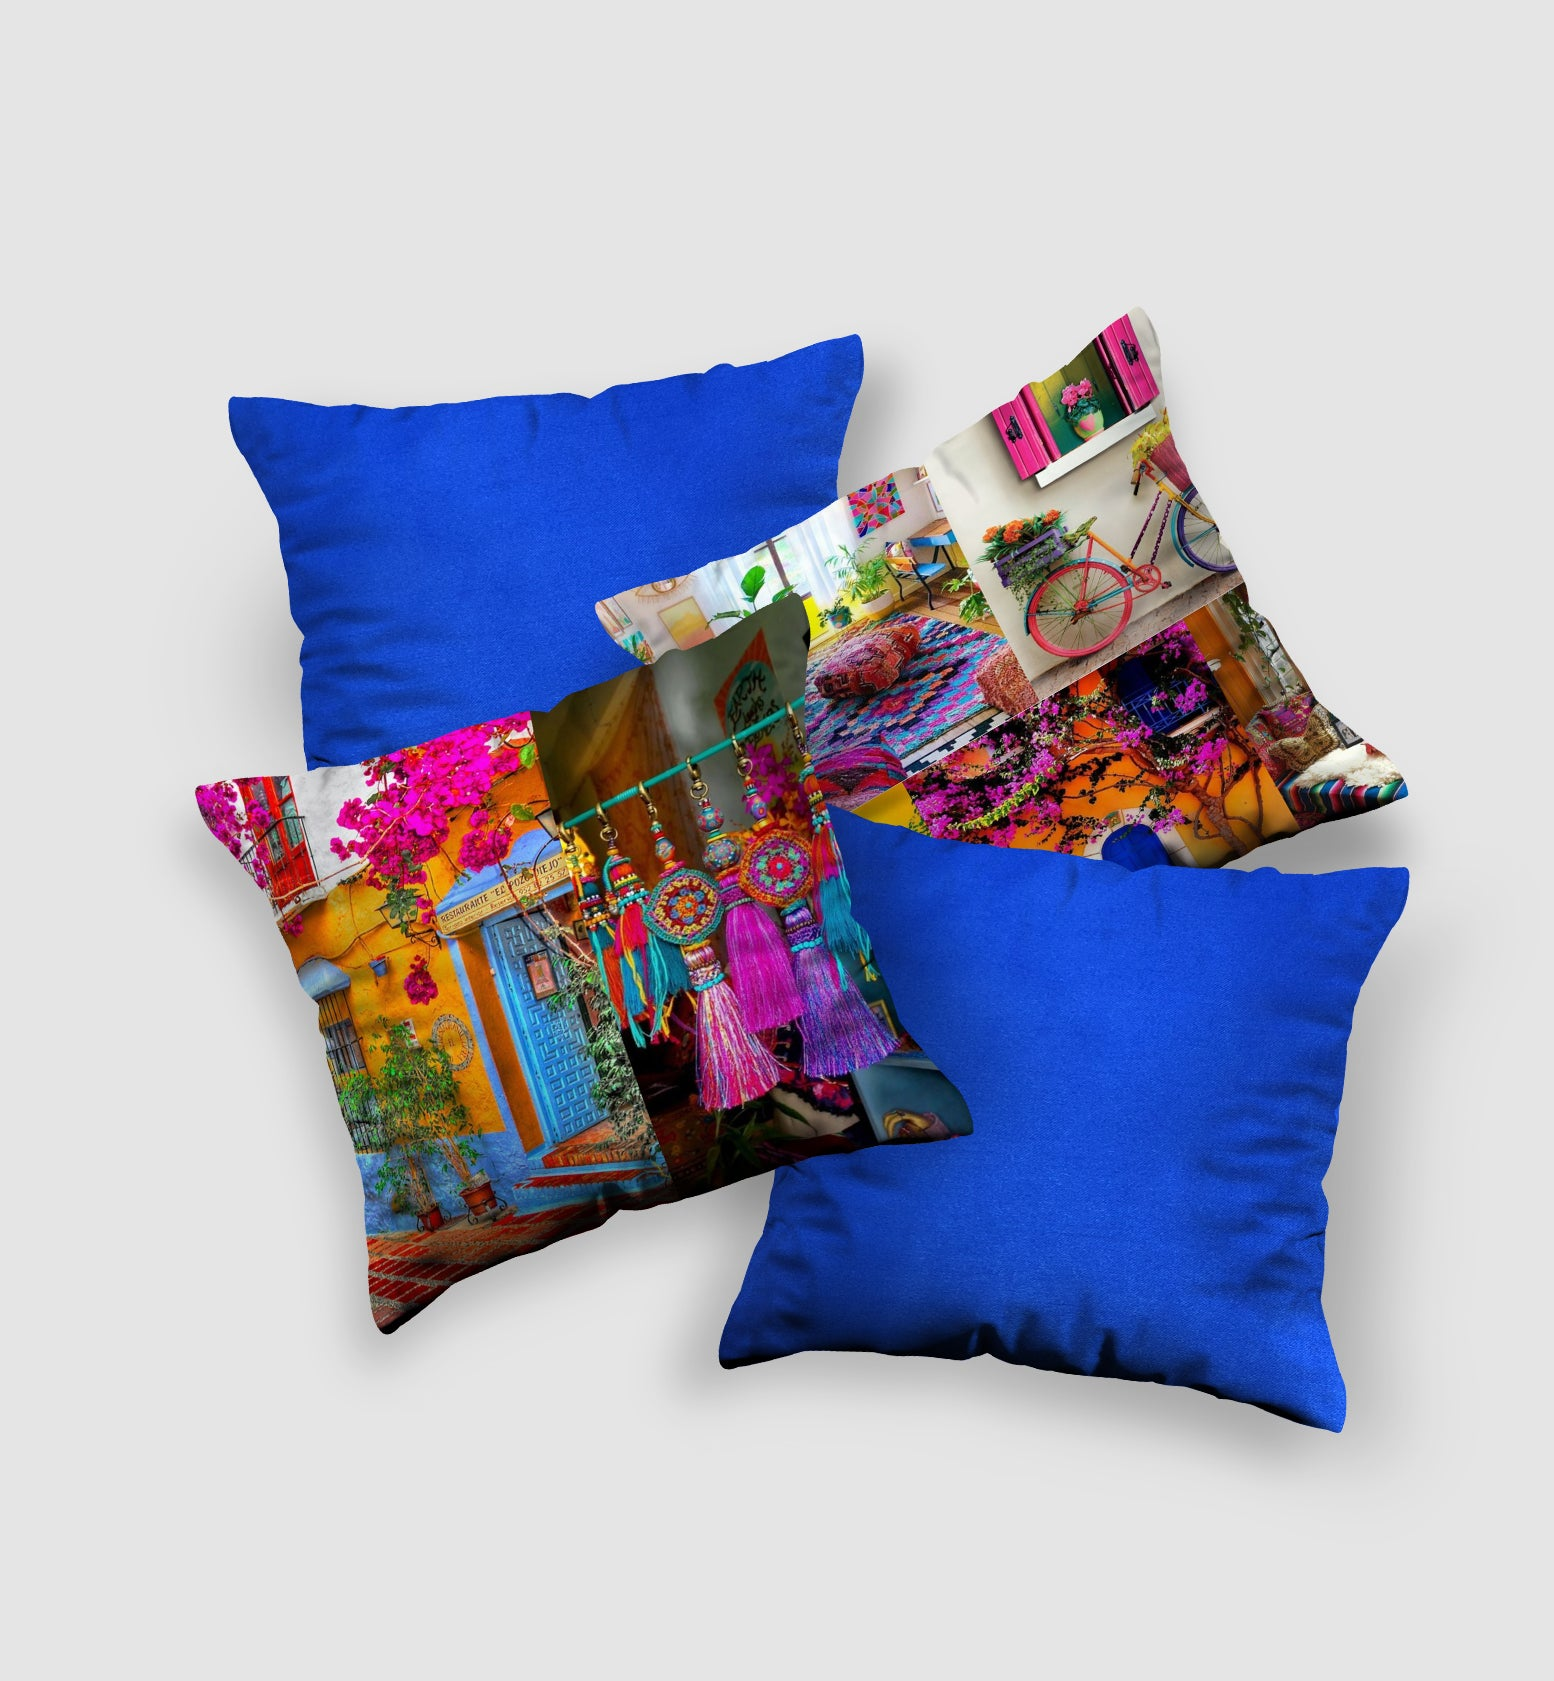 Cover Cushion Sweet Home Style (4 pcs)